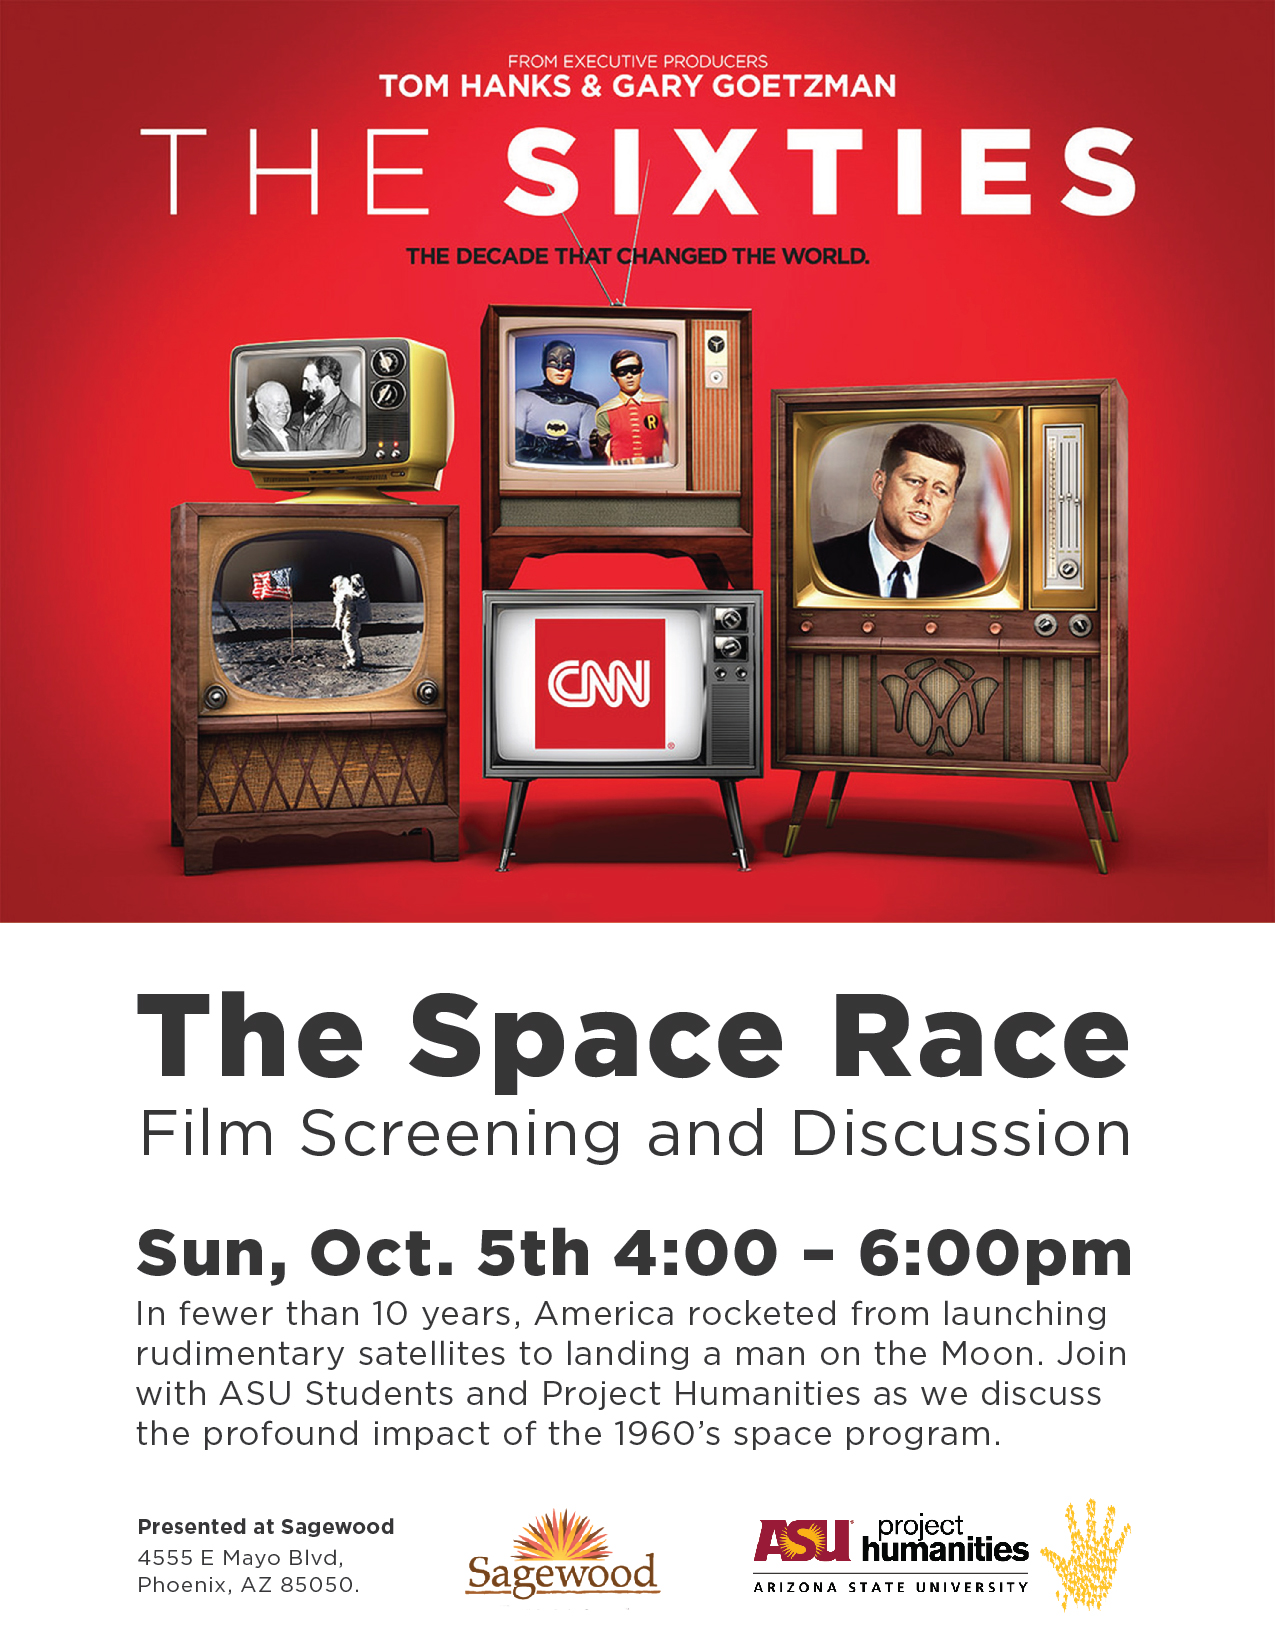 Come Watch And Discuss The S Space Program Oct 5